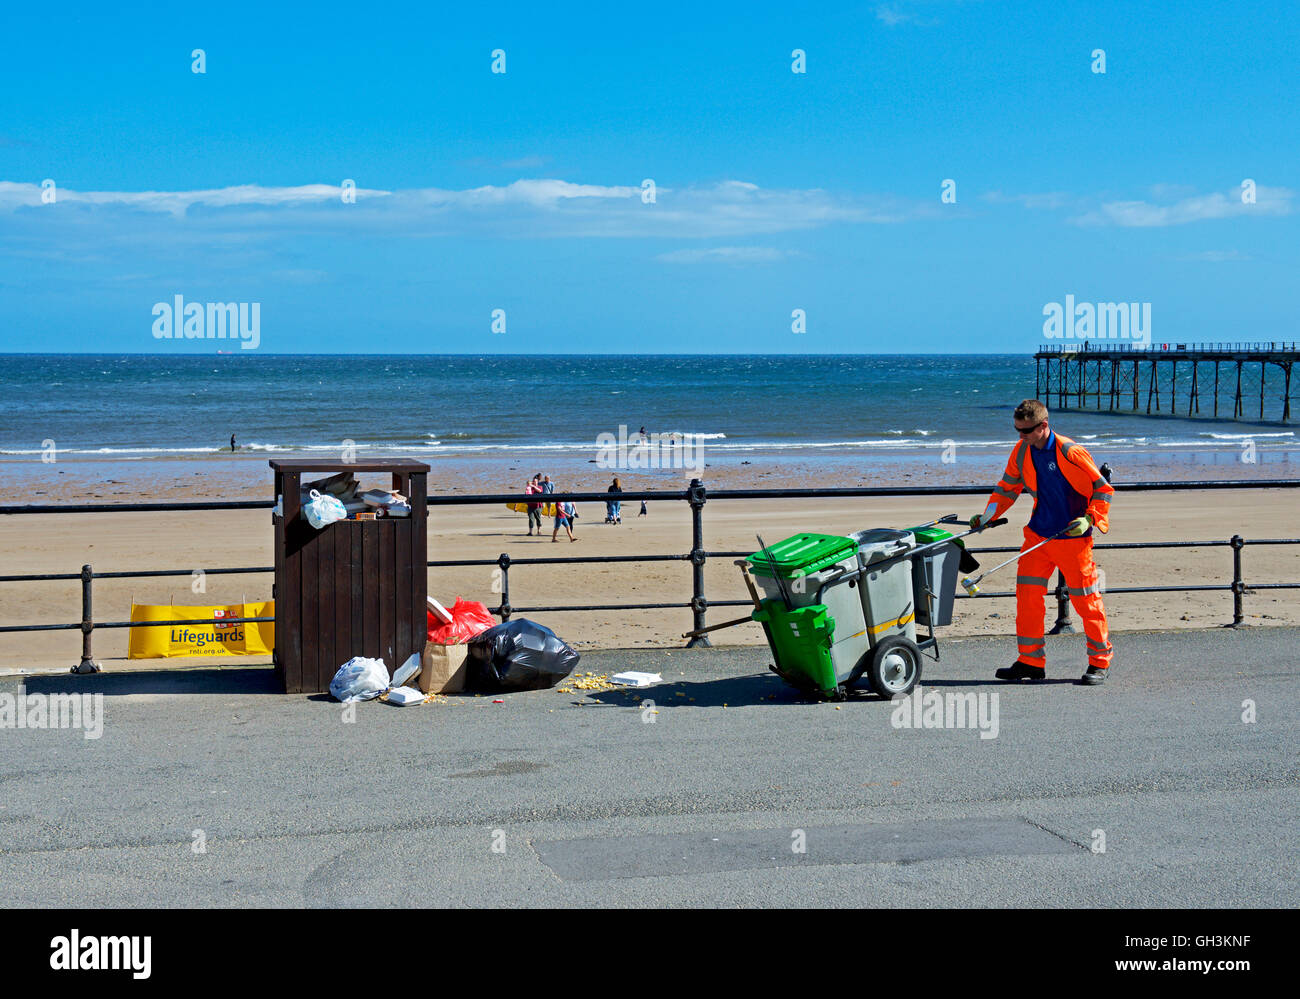 Council workman approaching overflowing rubbish bin on the promenade at Saltburn, North Yorkshire, England UK - Stock Image